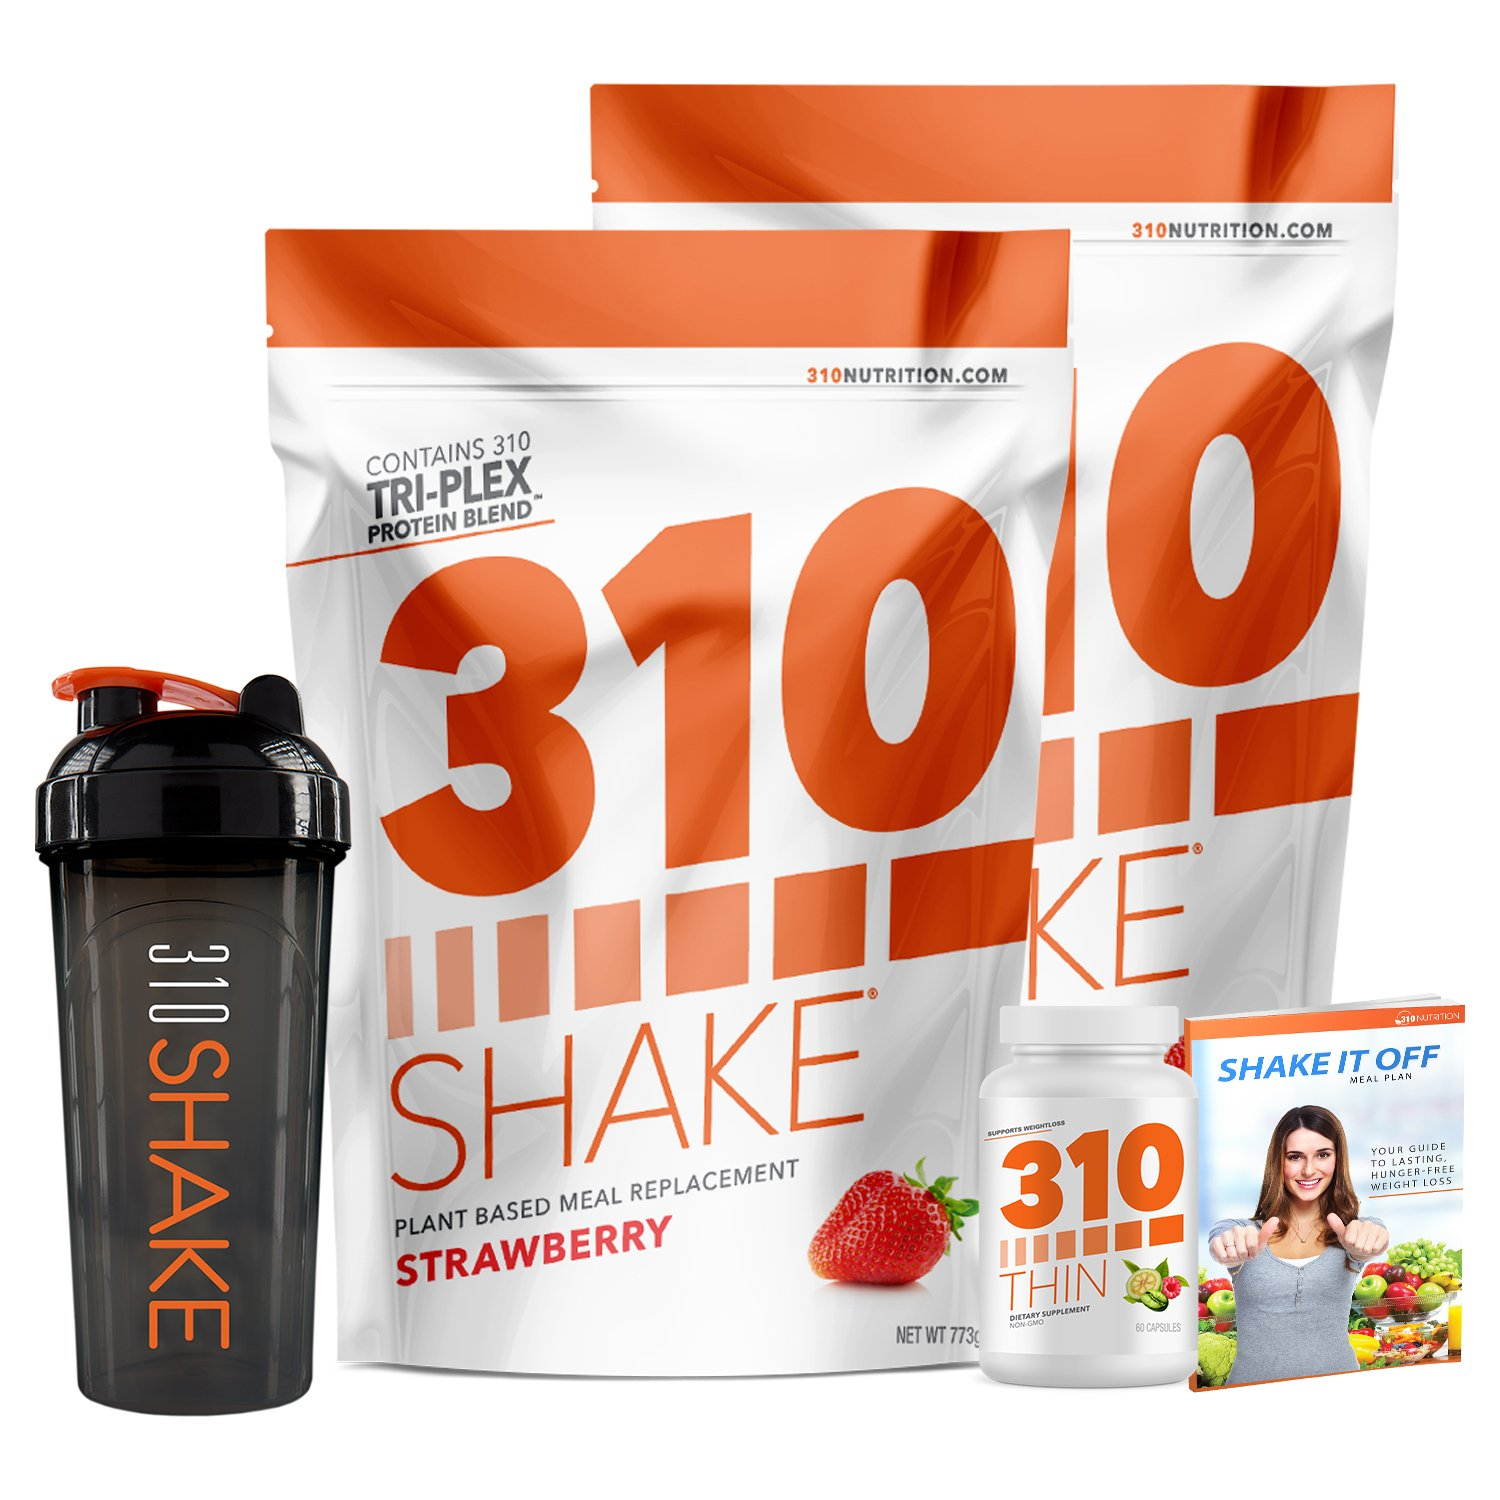 Strawberry Meal Replacement | 310 Shake Protein Powder is Gluten and Dairy free, Soy Protein and Sugar Free | Includes 310 Thin, Shaker and Free Recipe eBook